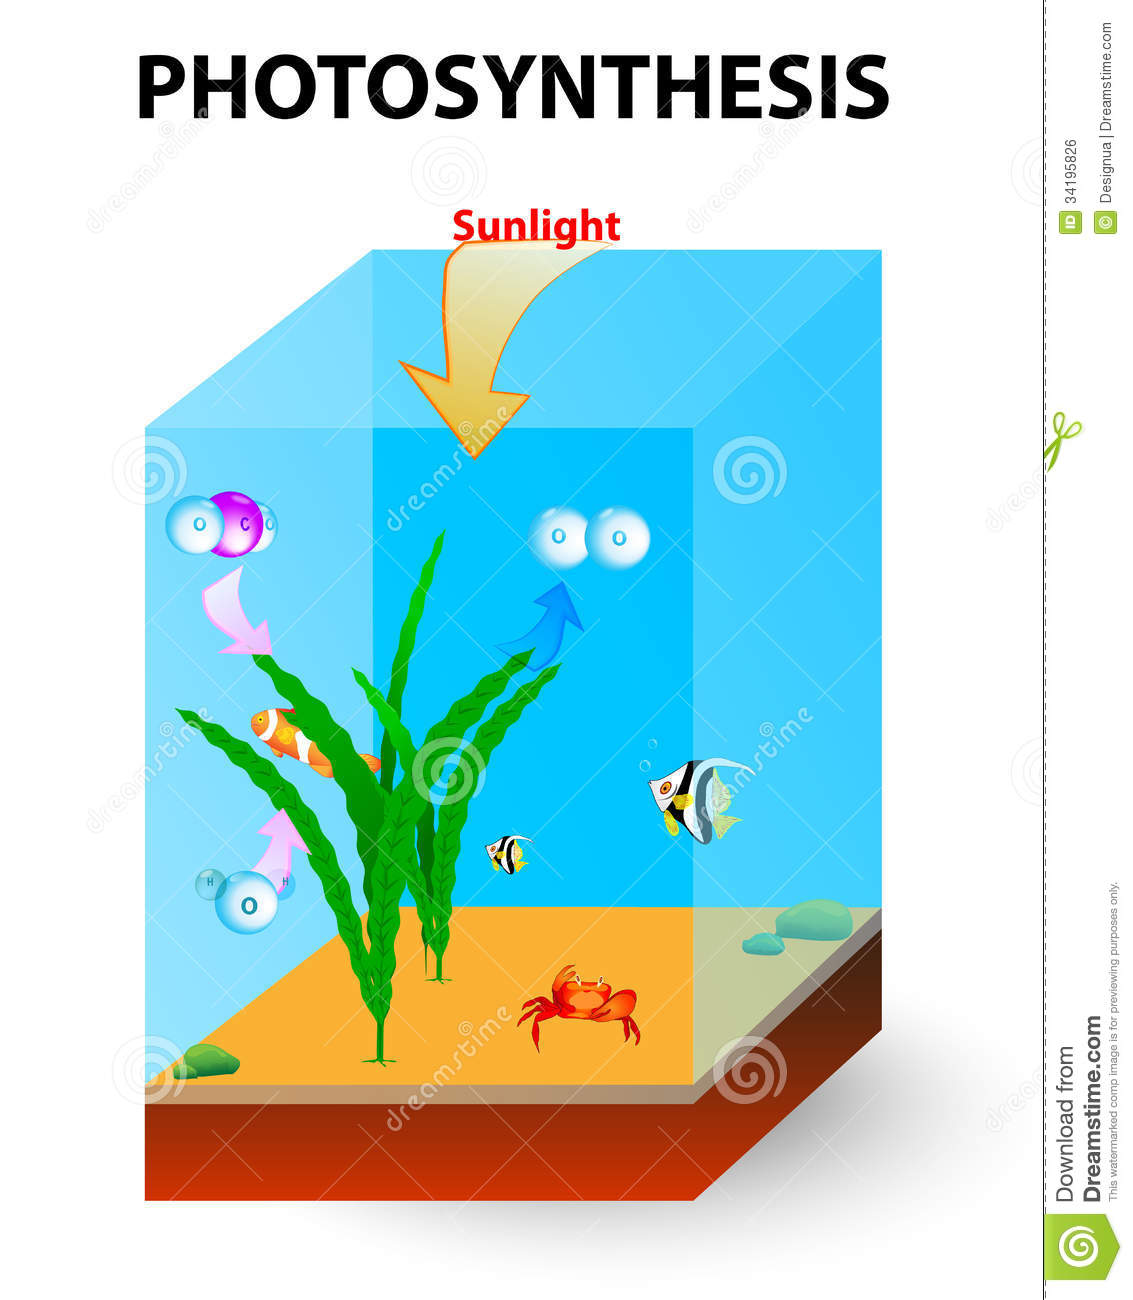 Process of photosynthesis in algae stock vector illustration of process of photosynthesis in algae pooptronica